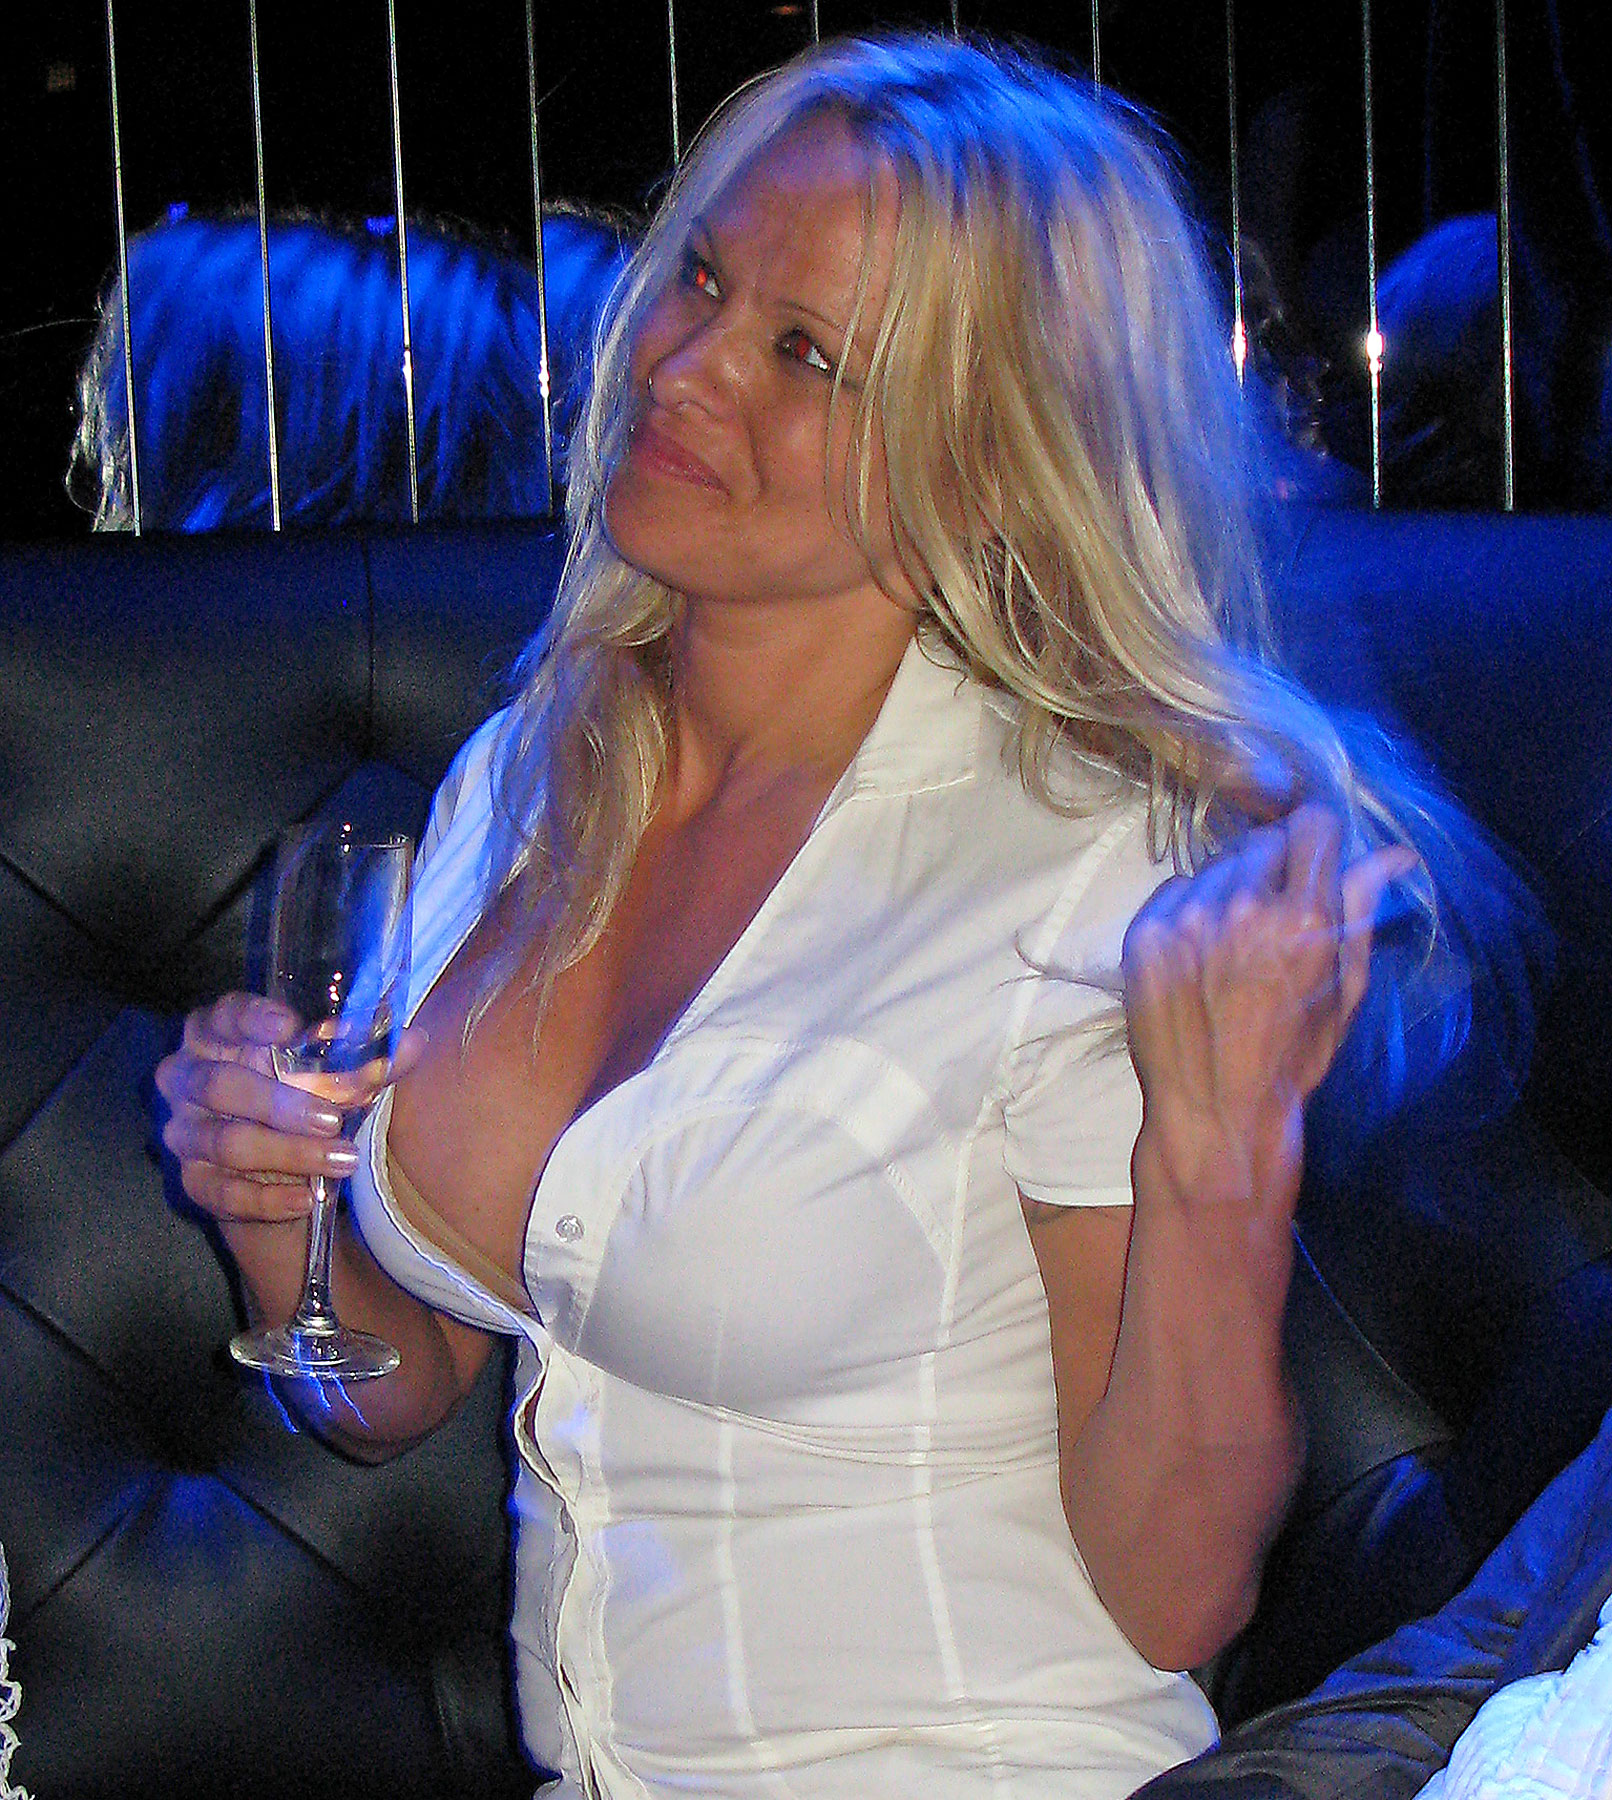 Pam Anderson Presses the Flesh at Strip Club/Steak House